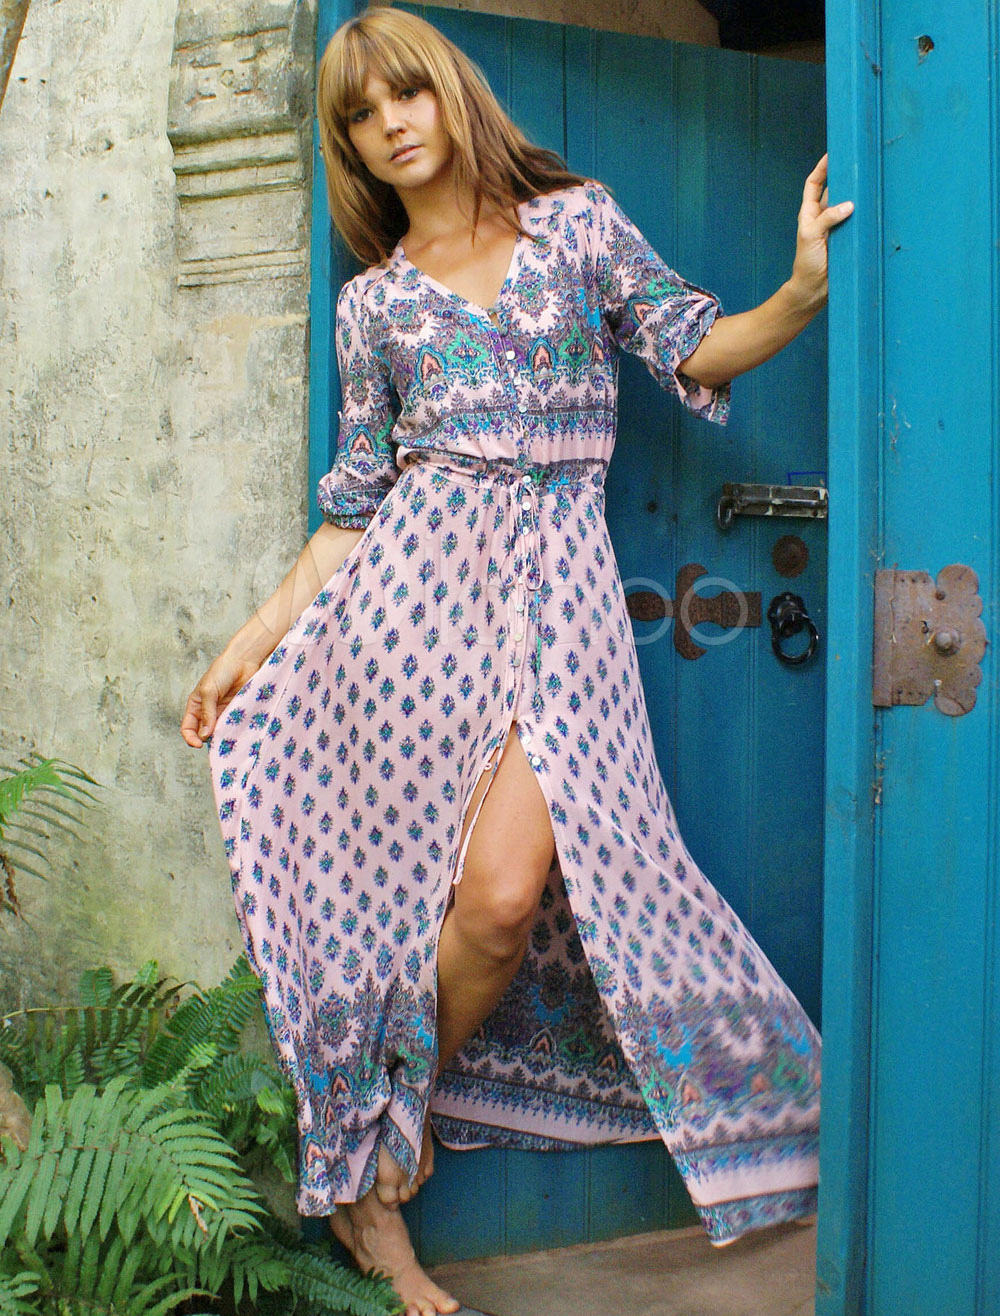 Multicolor Maxi Dress With Print Split Chiffon for Women Cheap clothes, free shipping worldwide